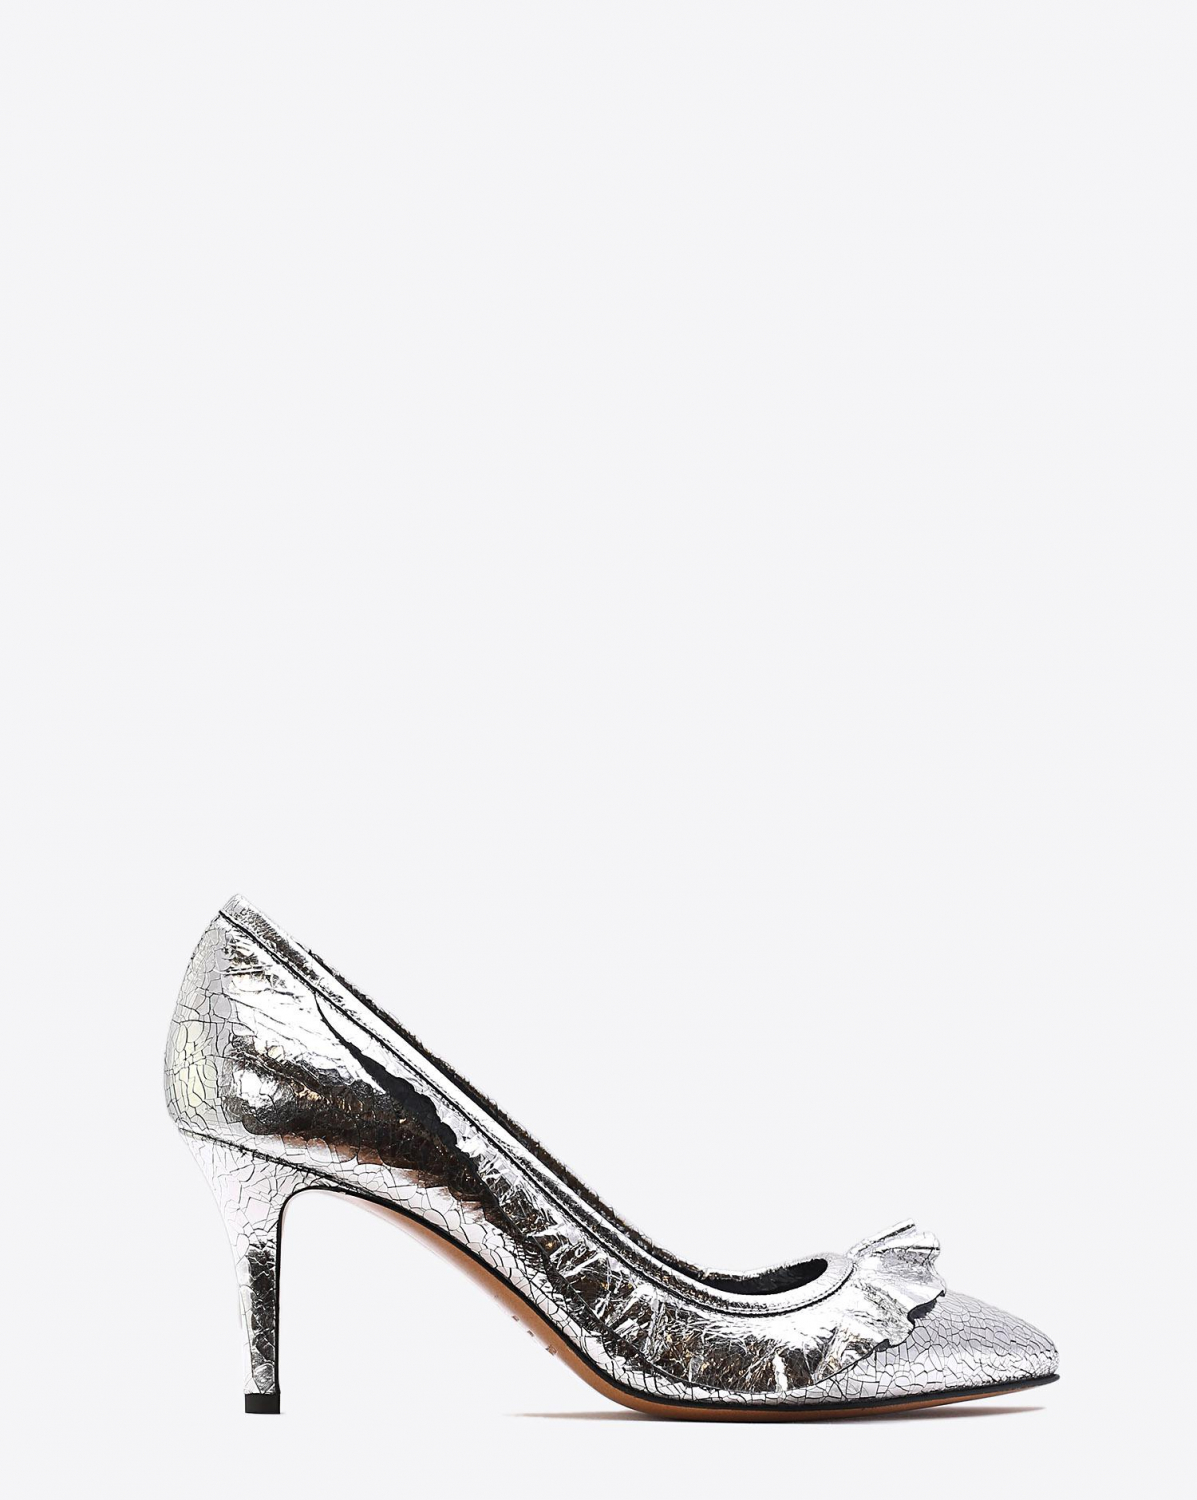 Isabel Marant Chaussures Escarpins Poween - Crack Leather Silver